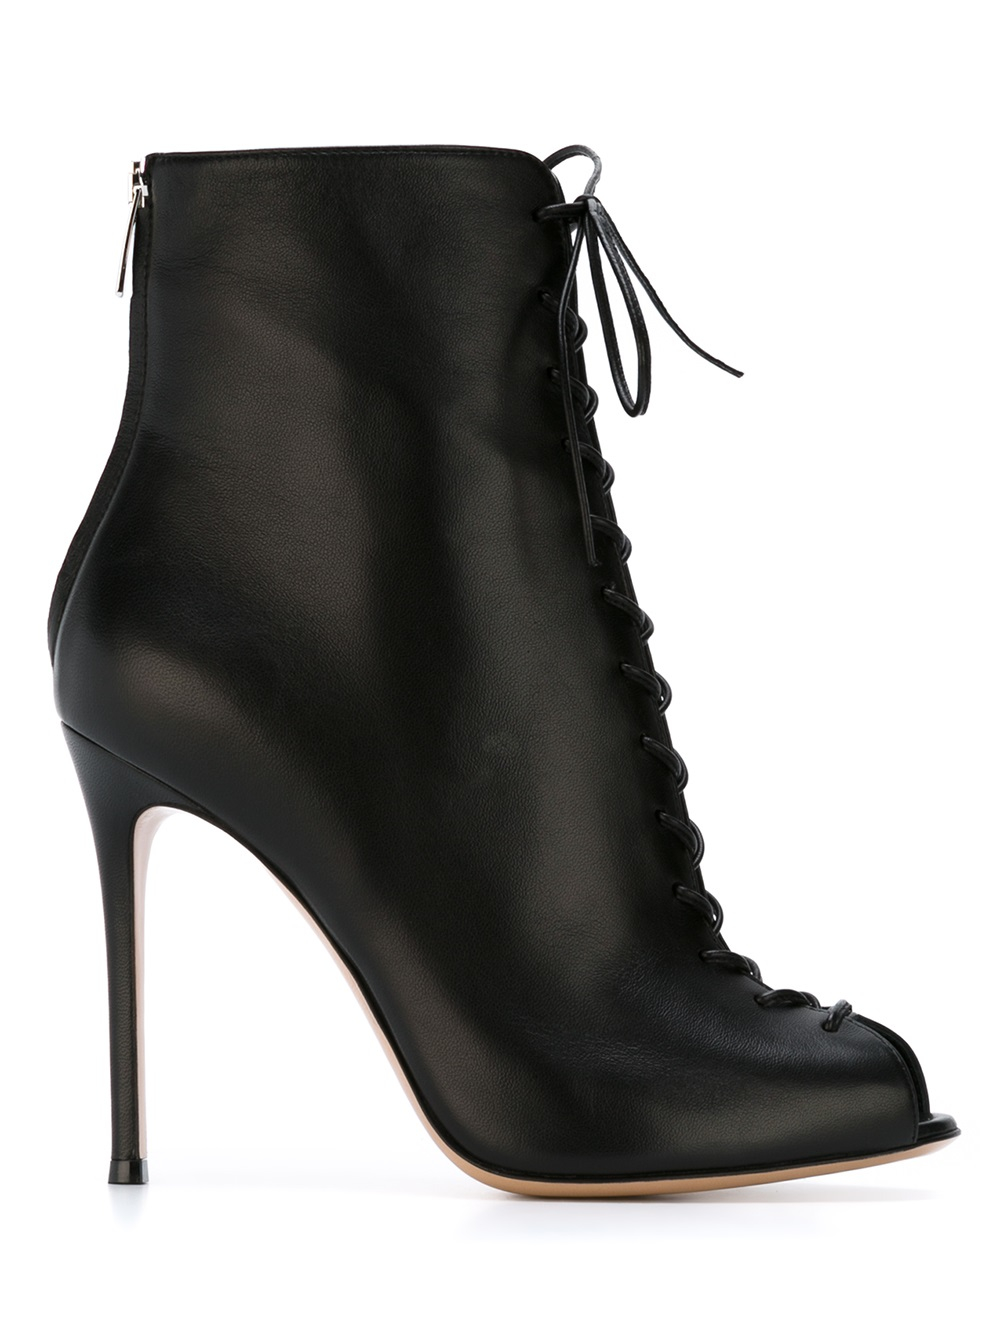 gianvito rossi suede laced up ankle boots in black lyst. Black Bedroom Furniture Sets. Home Design Ideas